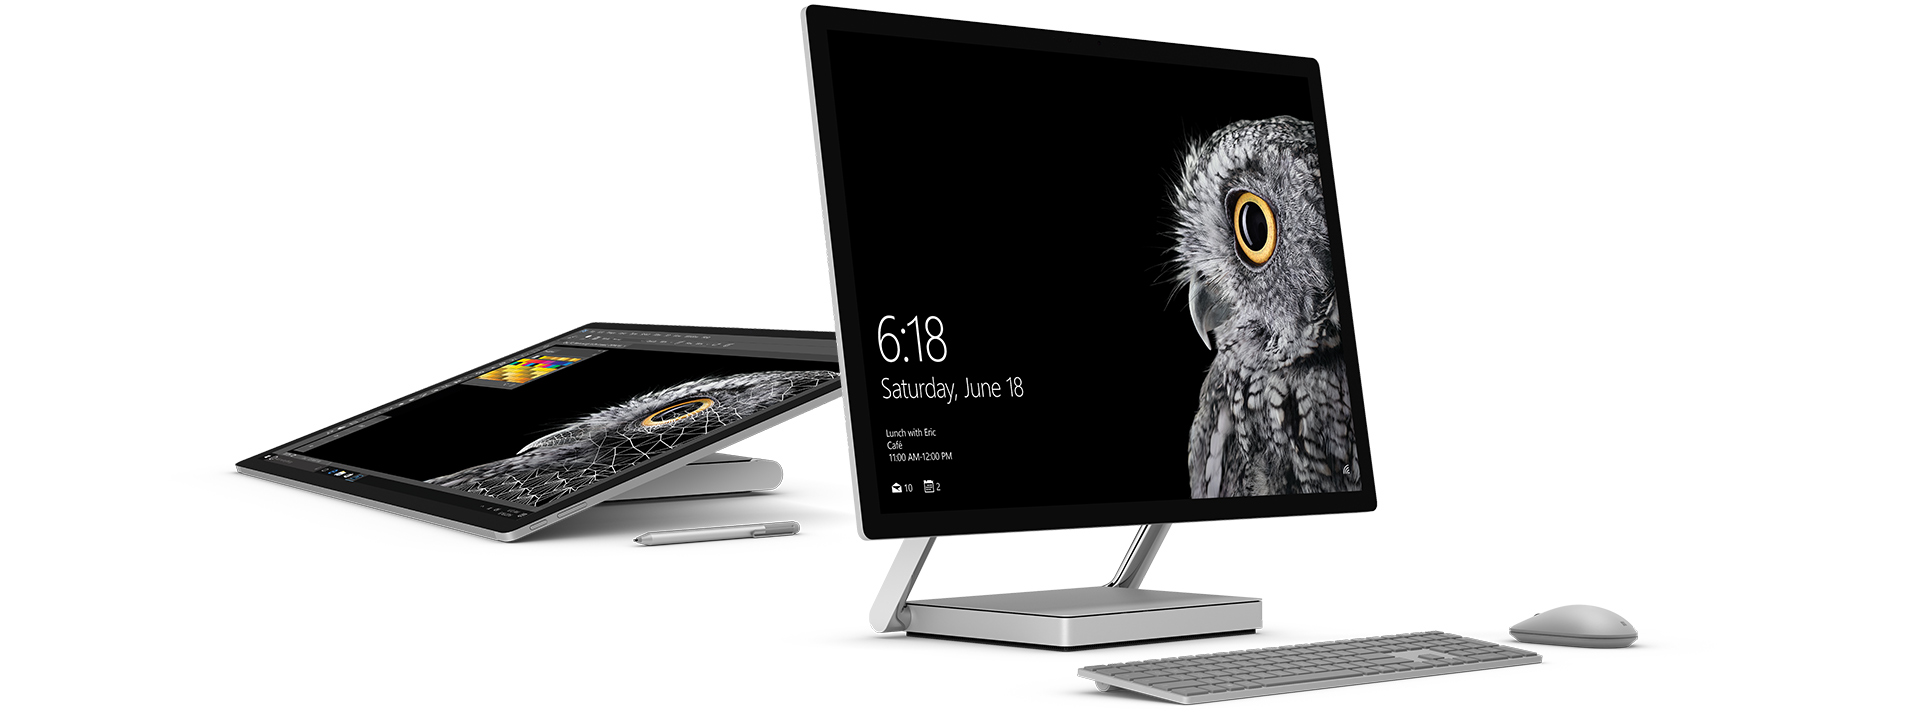 Introducing Microsoft Surface Studio